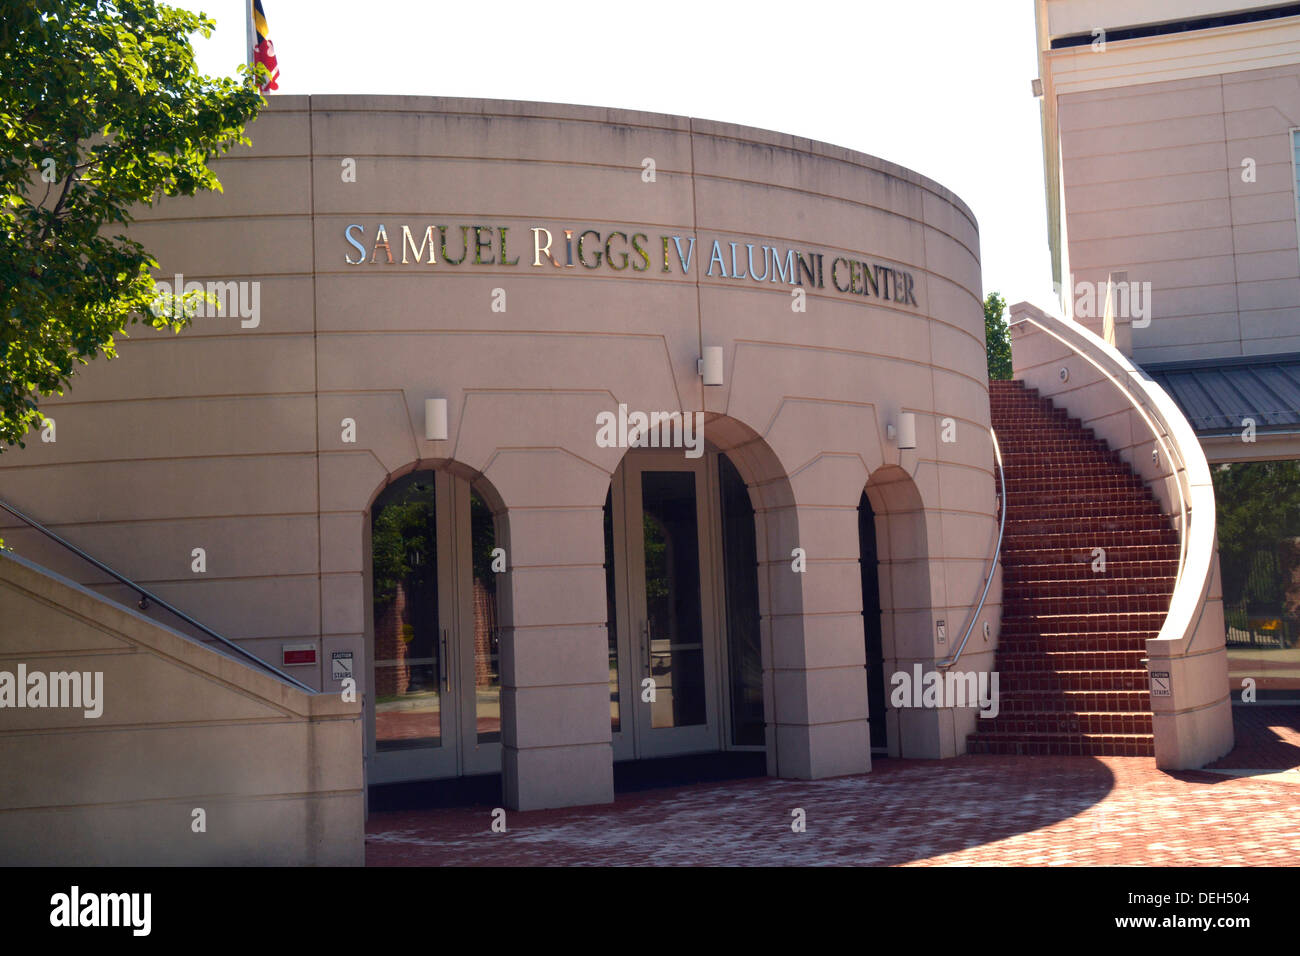 The Samuel Riggs Alumni Center at the University of Md in College Park, Md - Stock Image